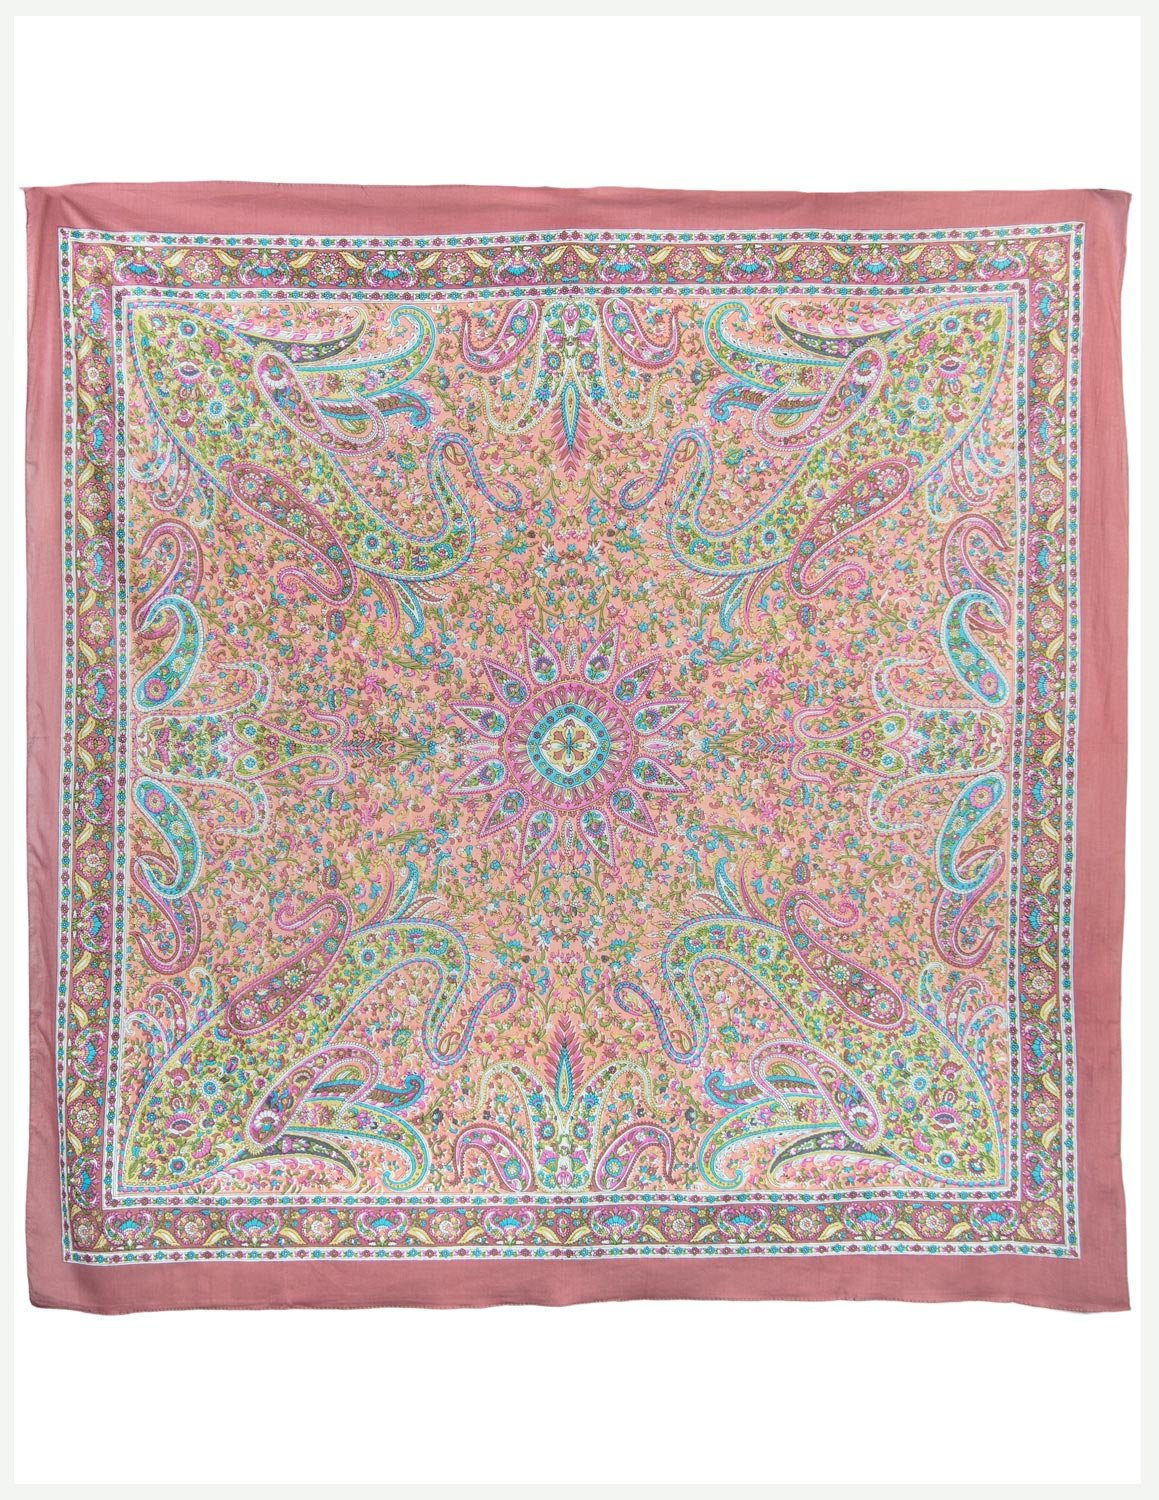 Fashionable Cotton Scarf - Indian Paisley Print - Hippie Style